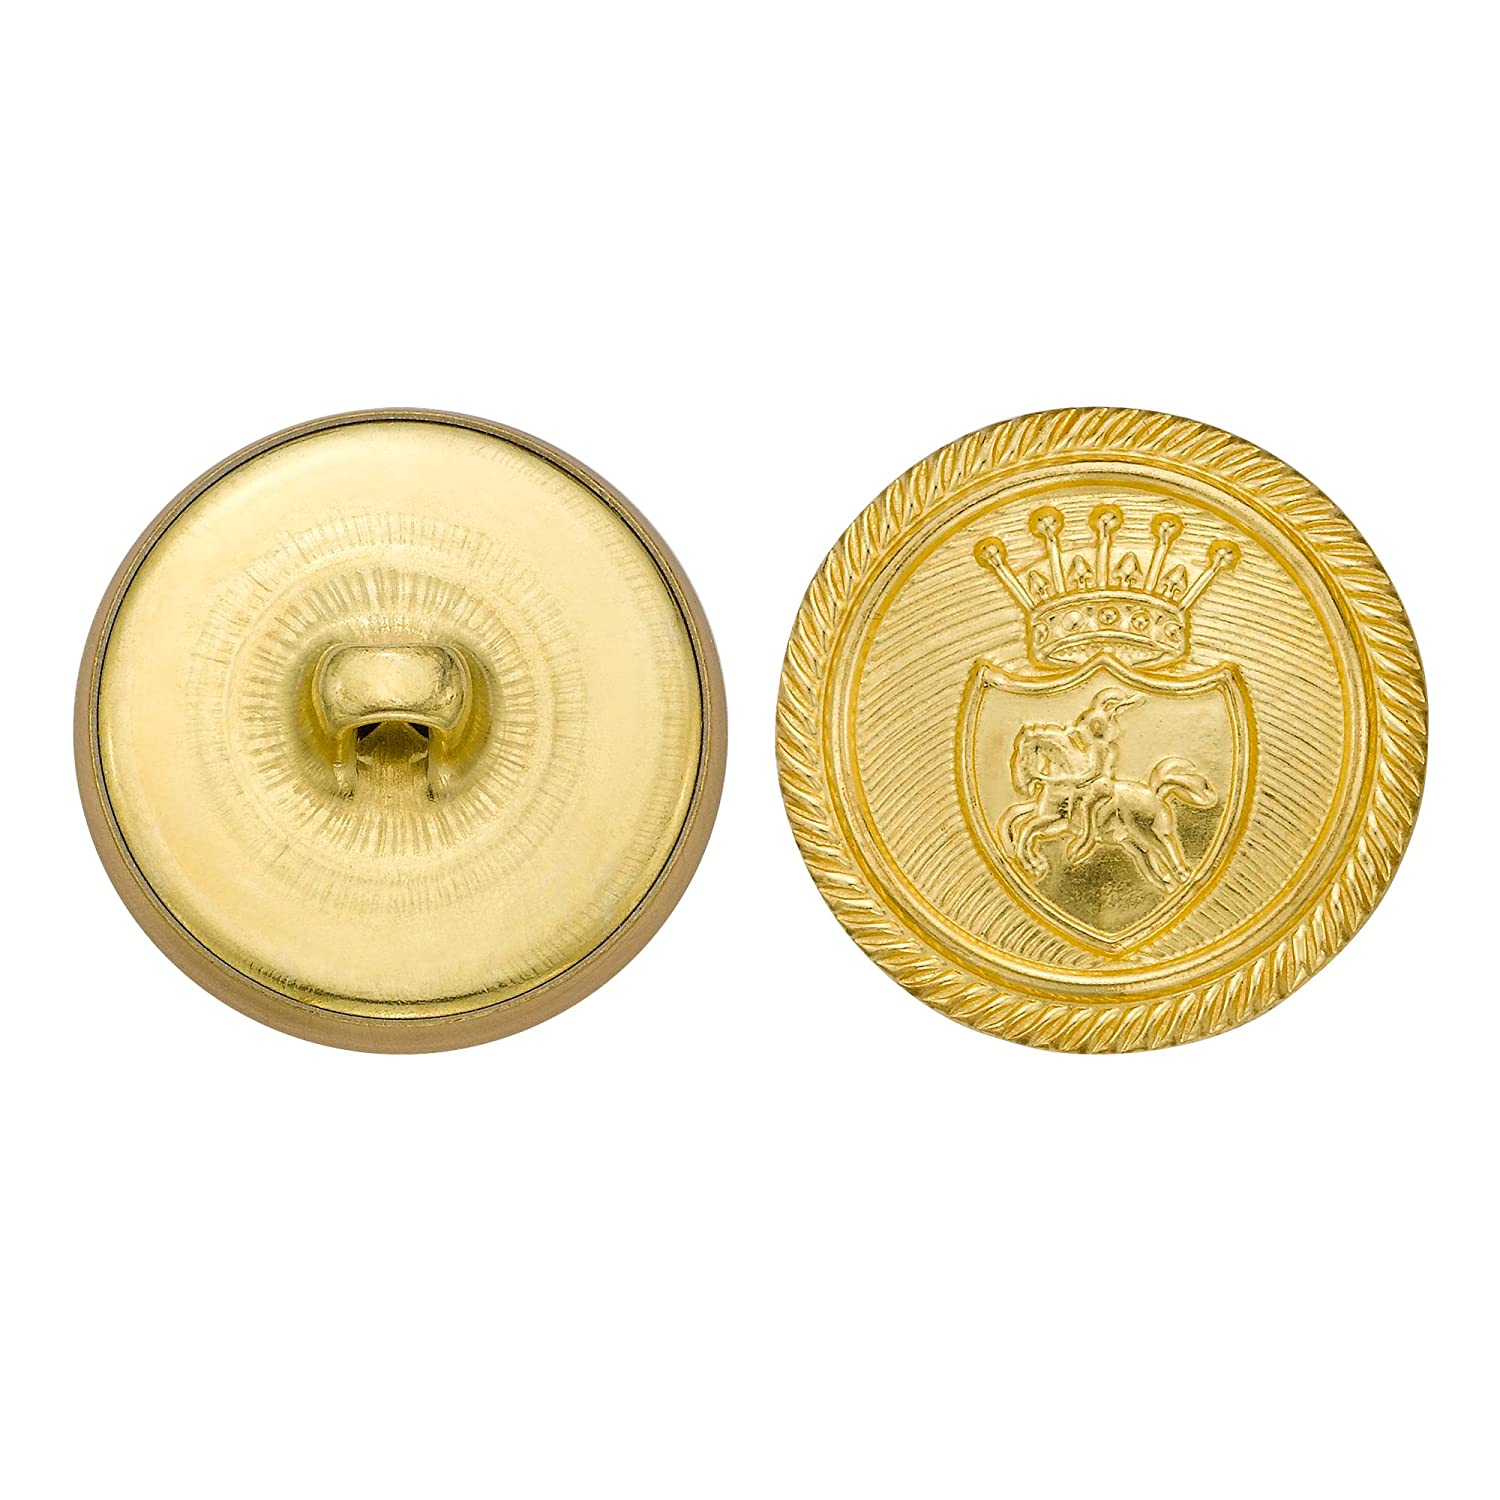 Gold Size 36 Ligne 36-Pack C/&C Metal Products Corp C/&C Metal Products 5312 Royal Horse Crest Metal Button